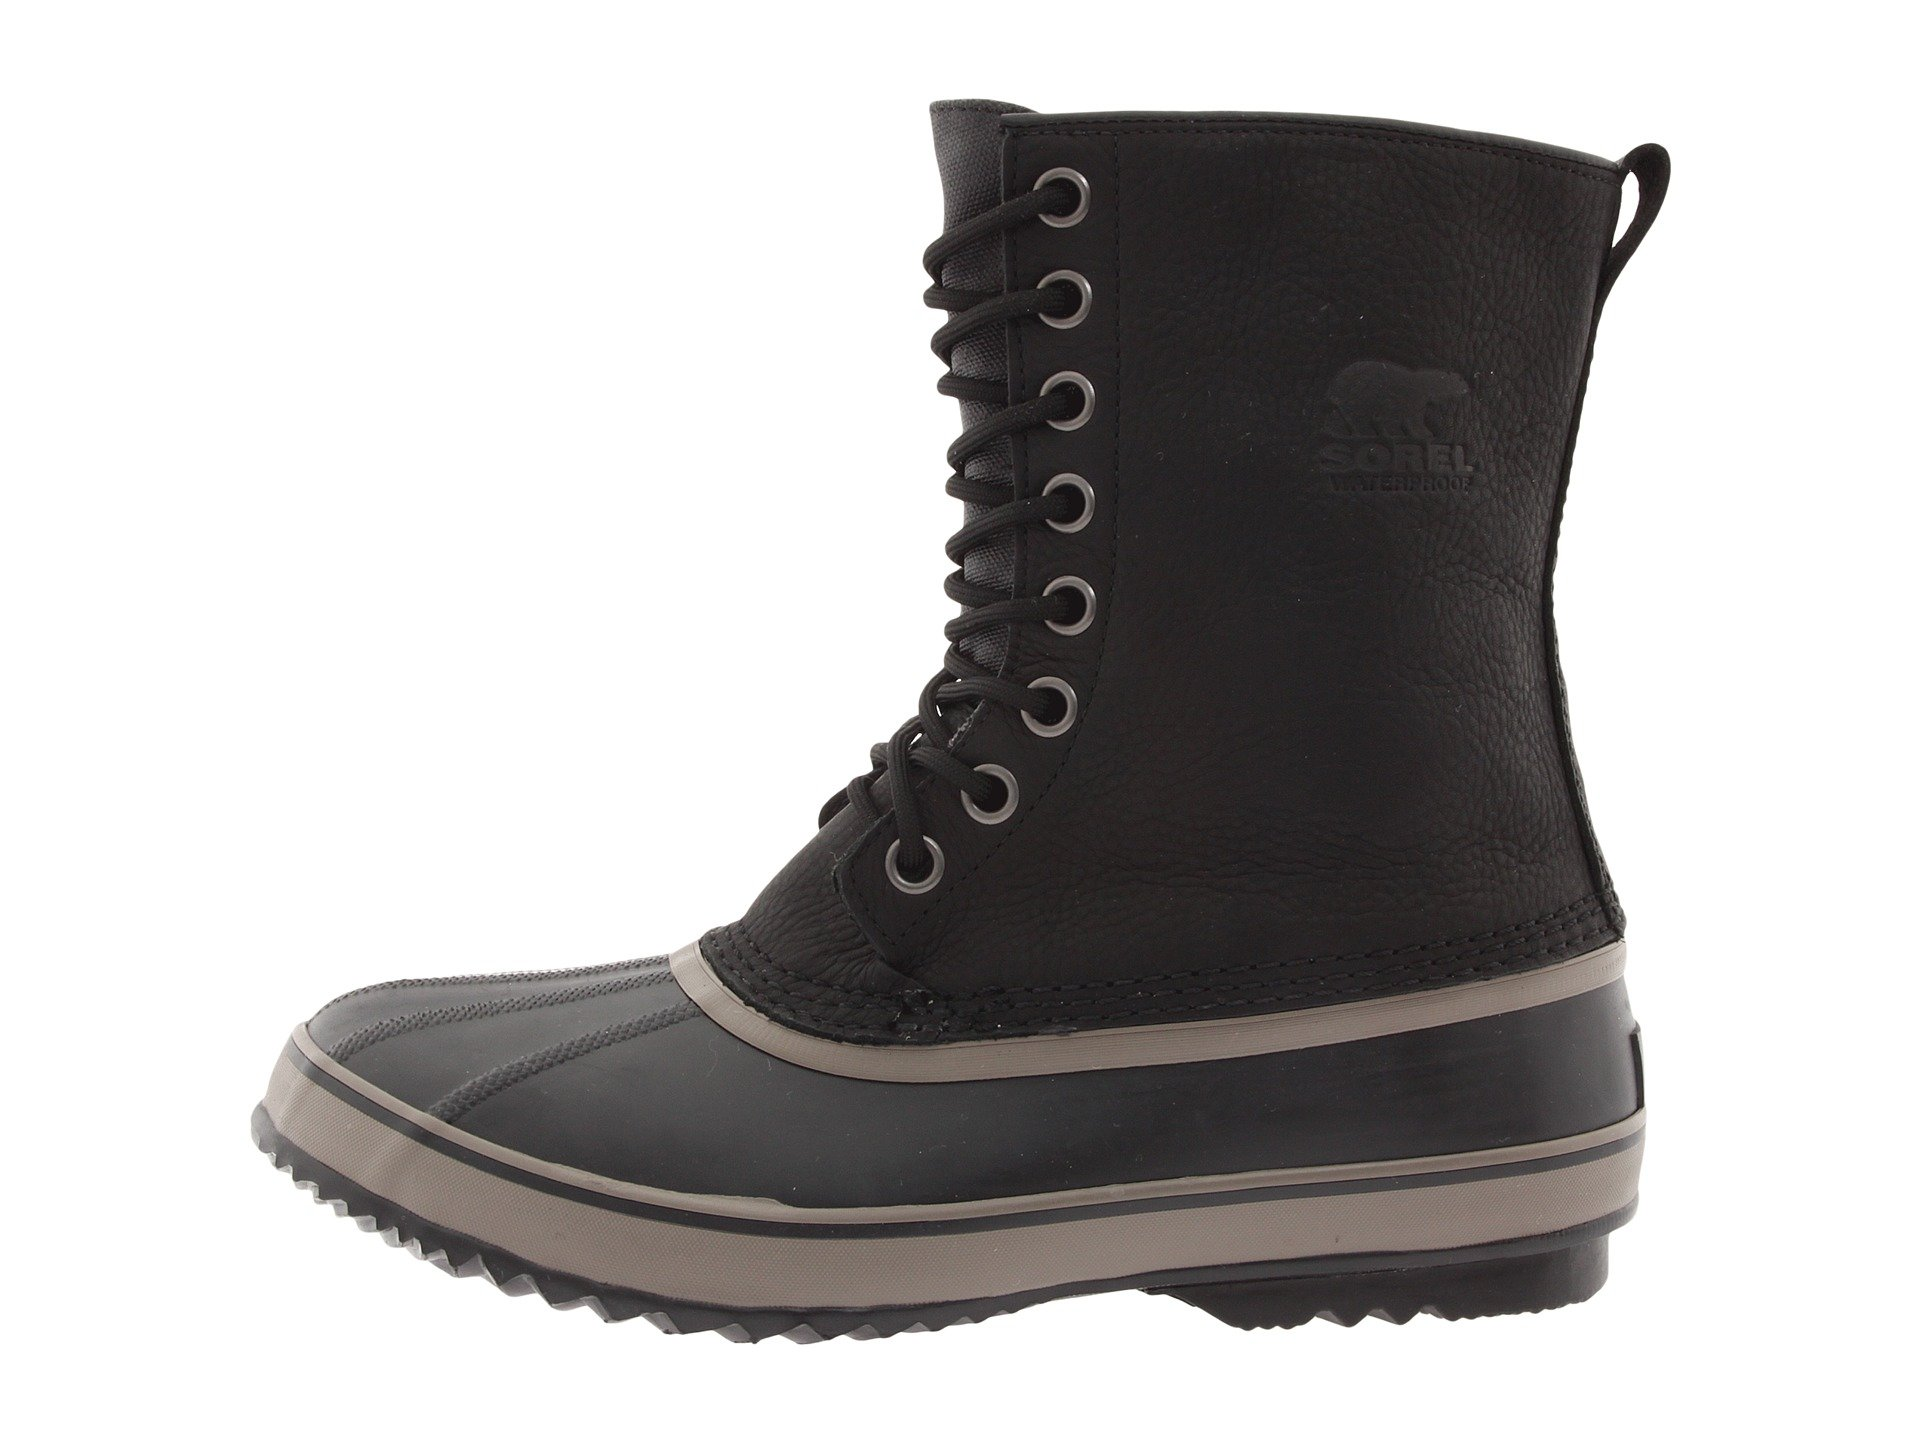 sorel 1964 premium waterproof leather boots in black